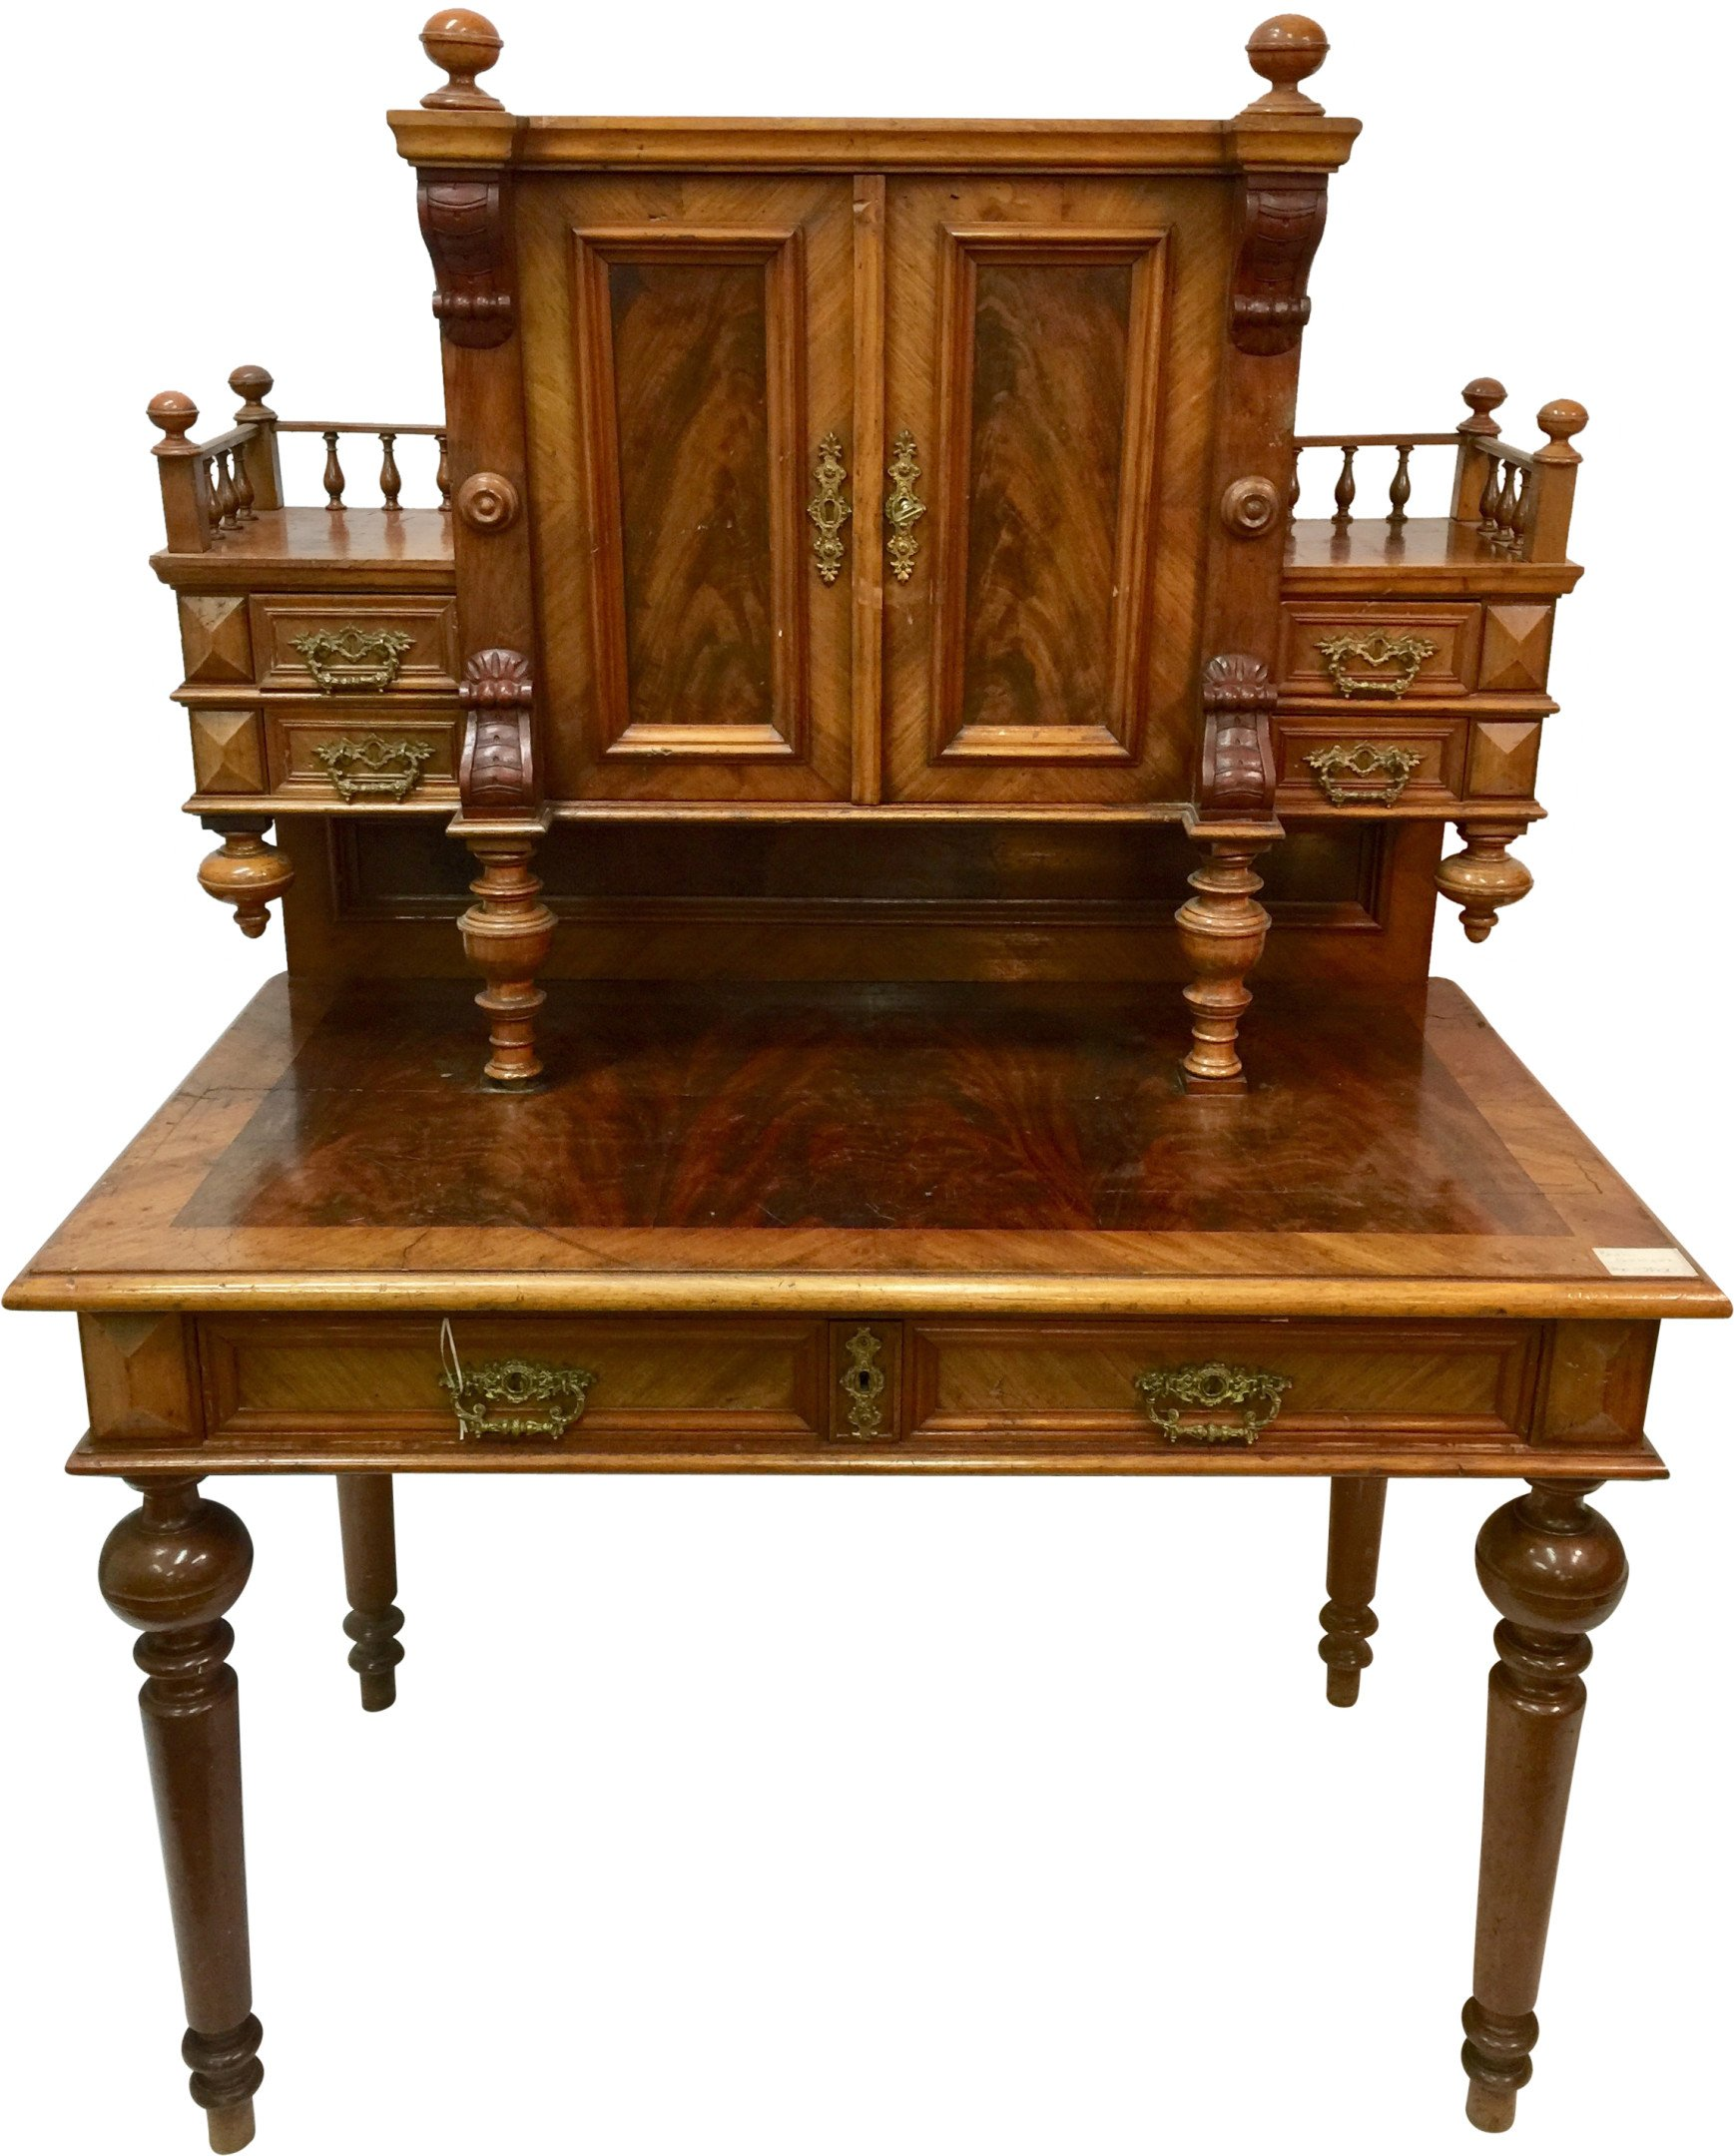 Eclectic secretary, end of 19th c.